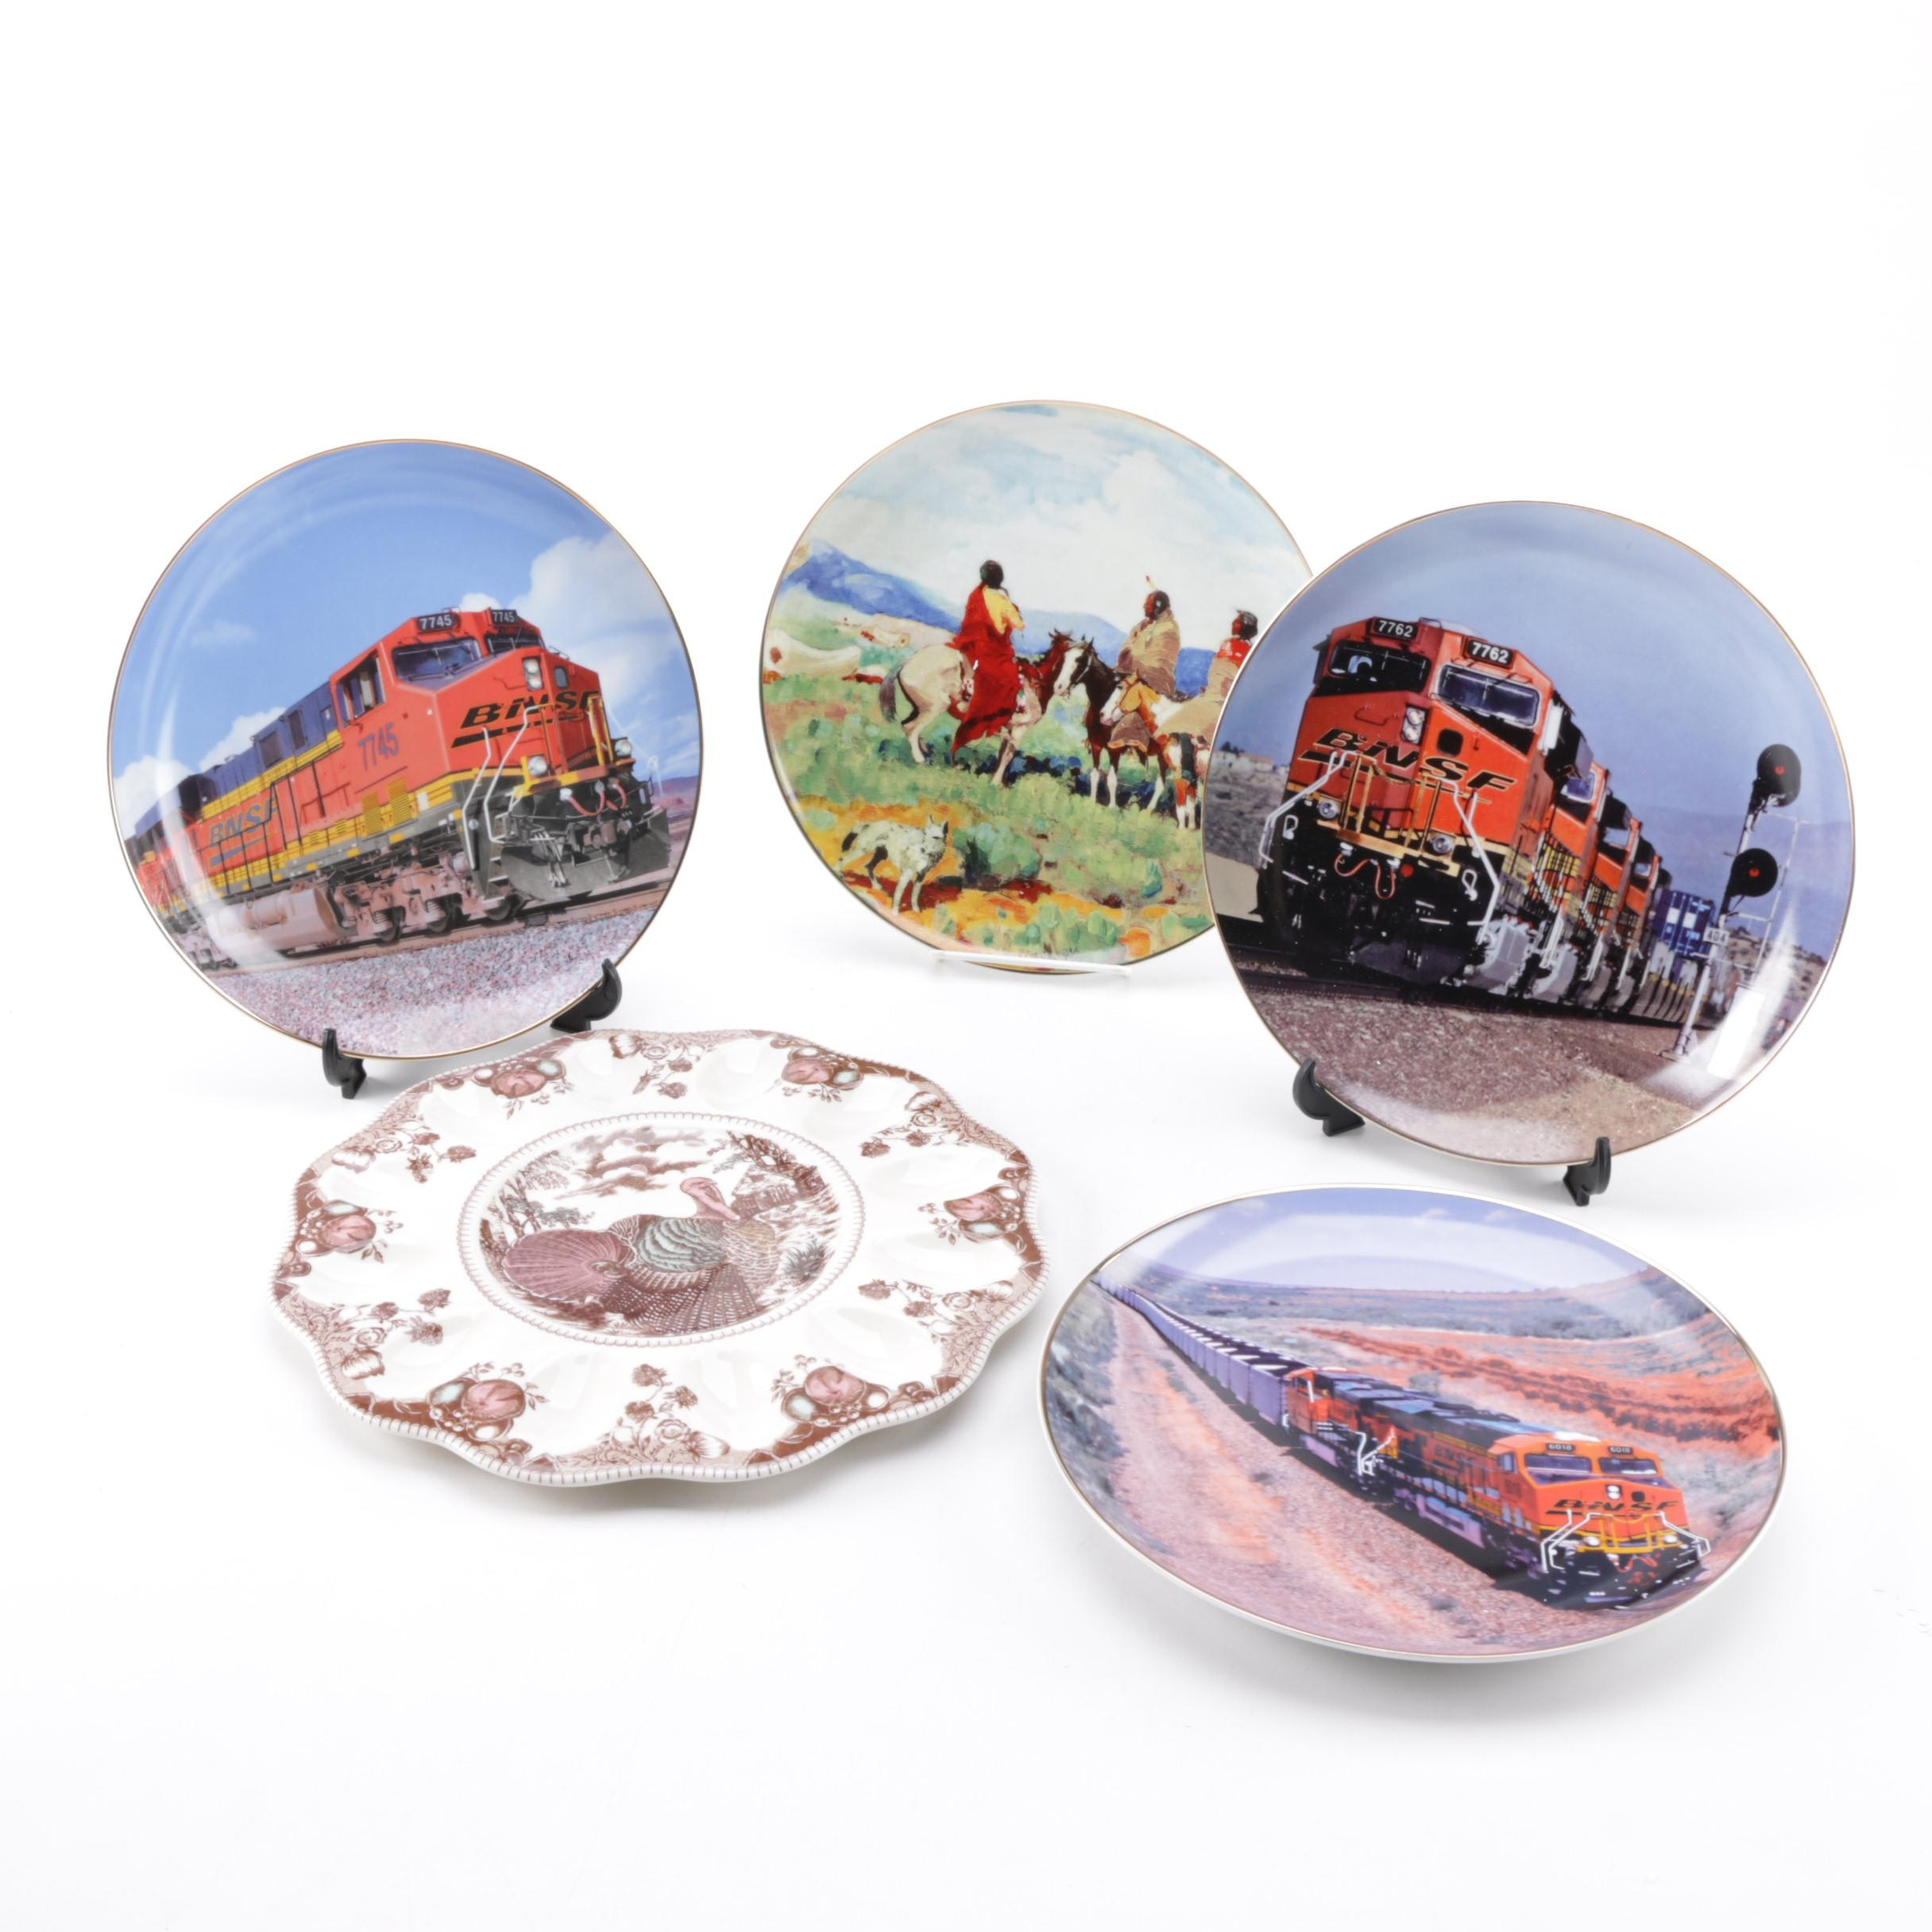 Collectible Plates and Serveware